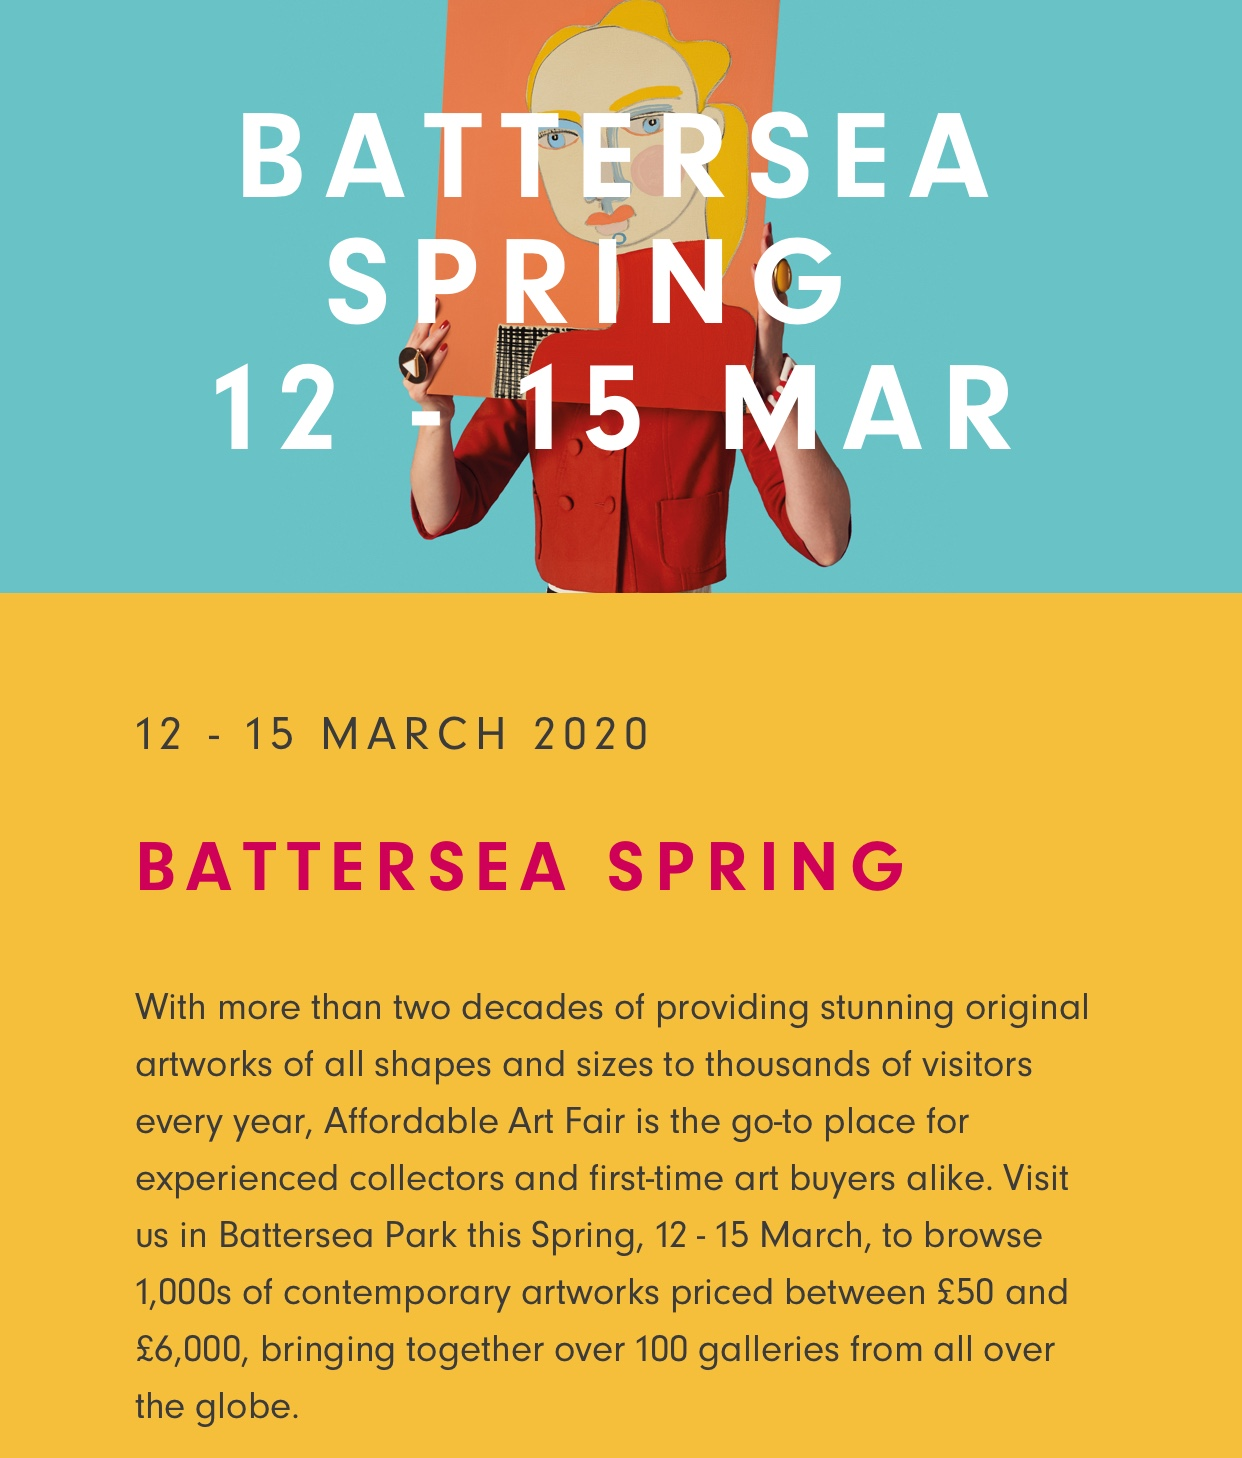 Affordable art fair Battersea 11-15 March 2020